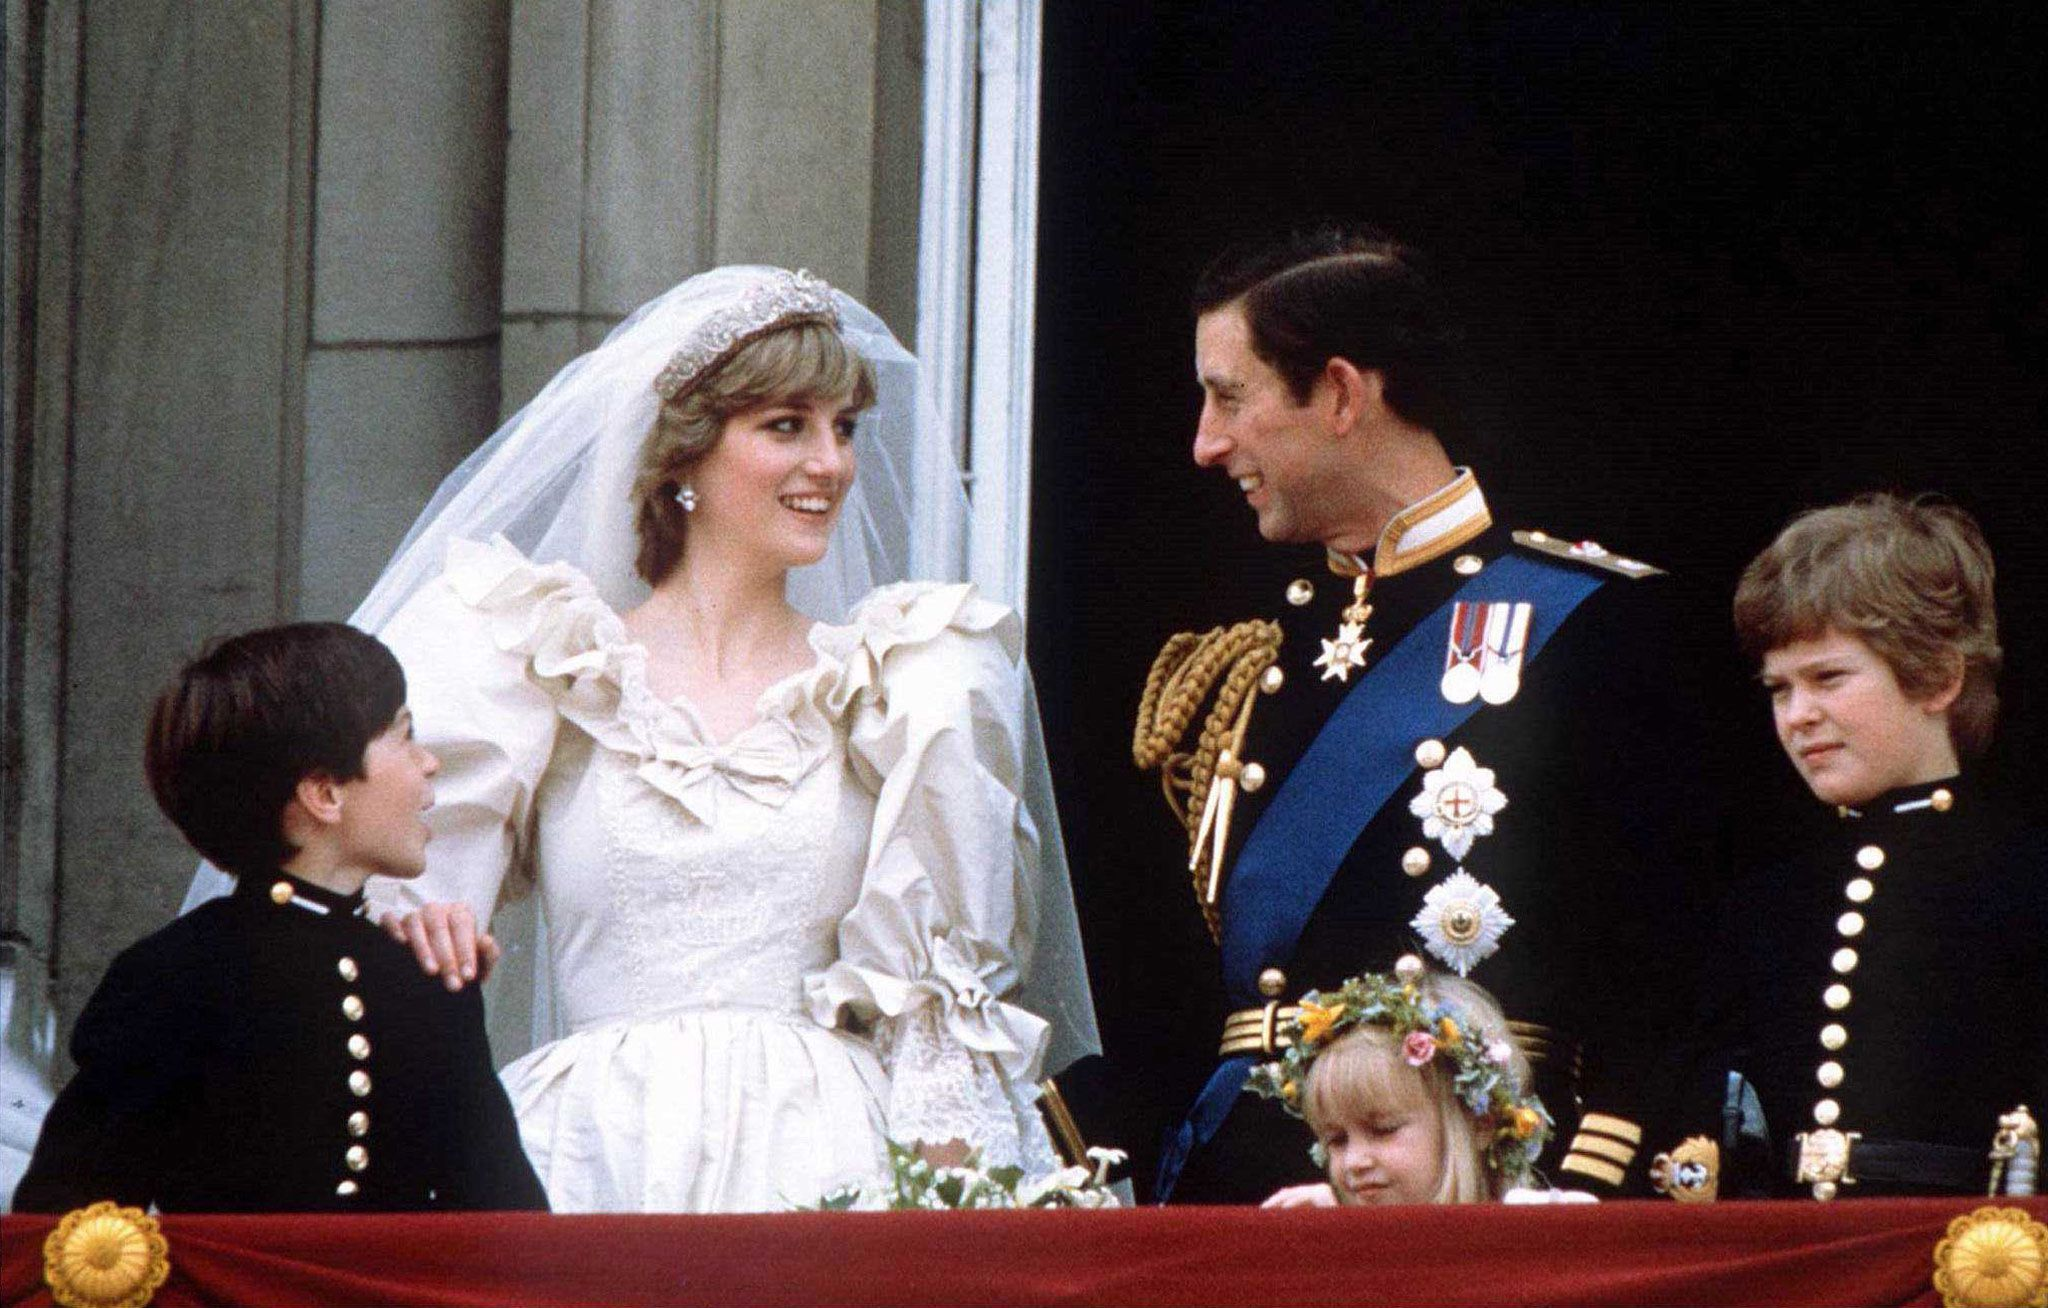 Prince Charless personal life and family, wedding and divorce with Princess Diana